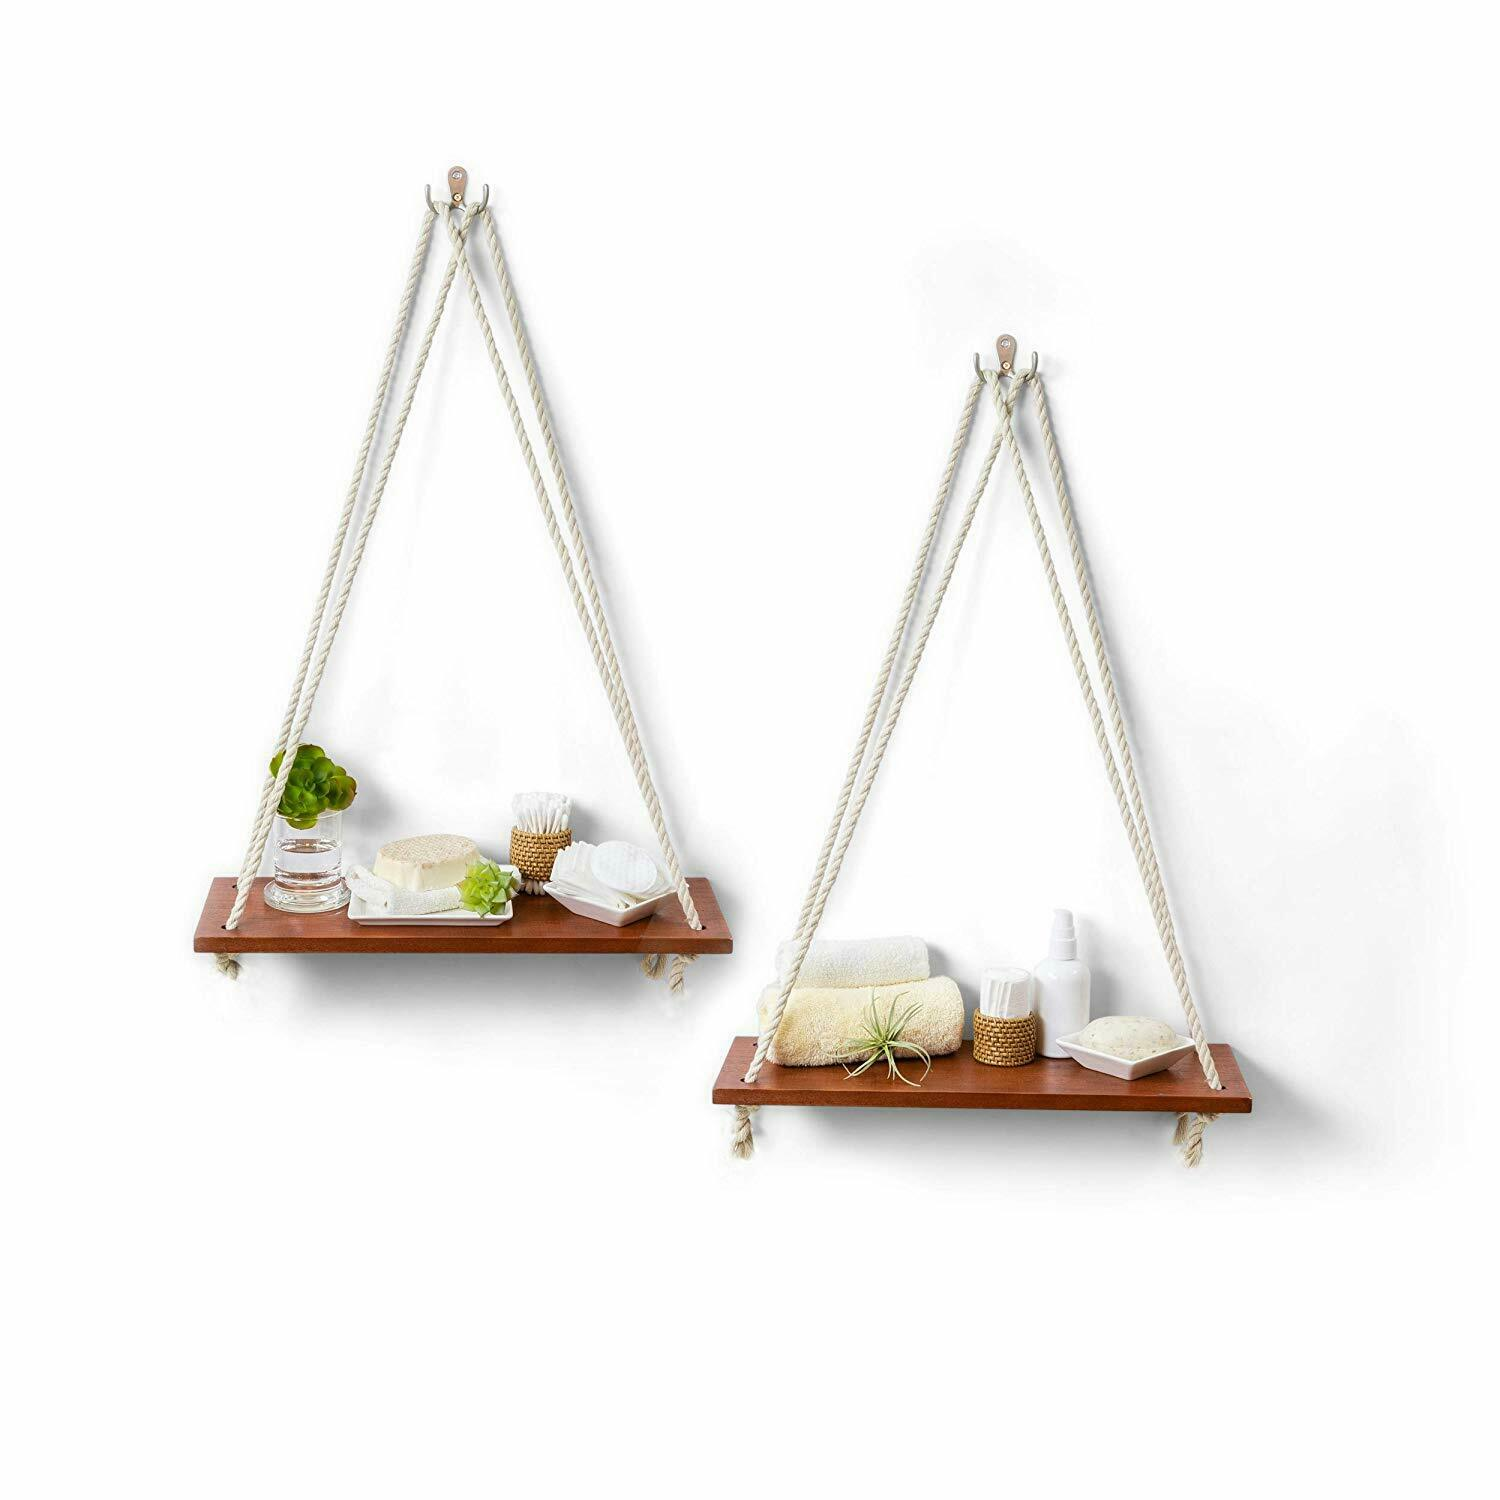 Hanging Shelves with White Cotton Rope   Floating Wall Shelv